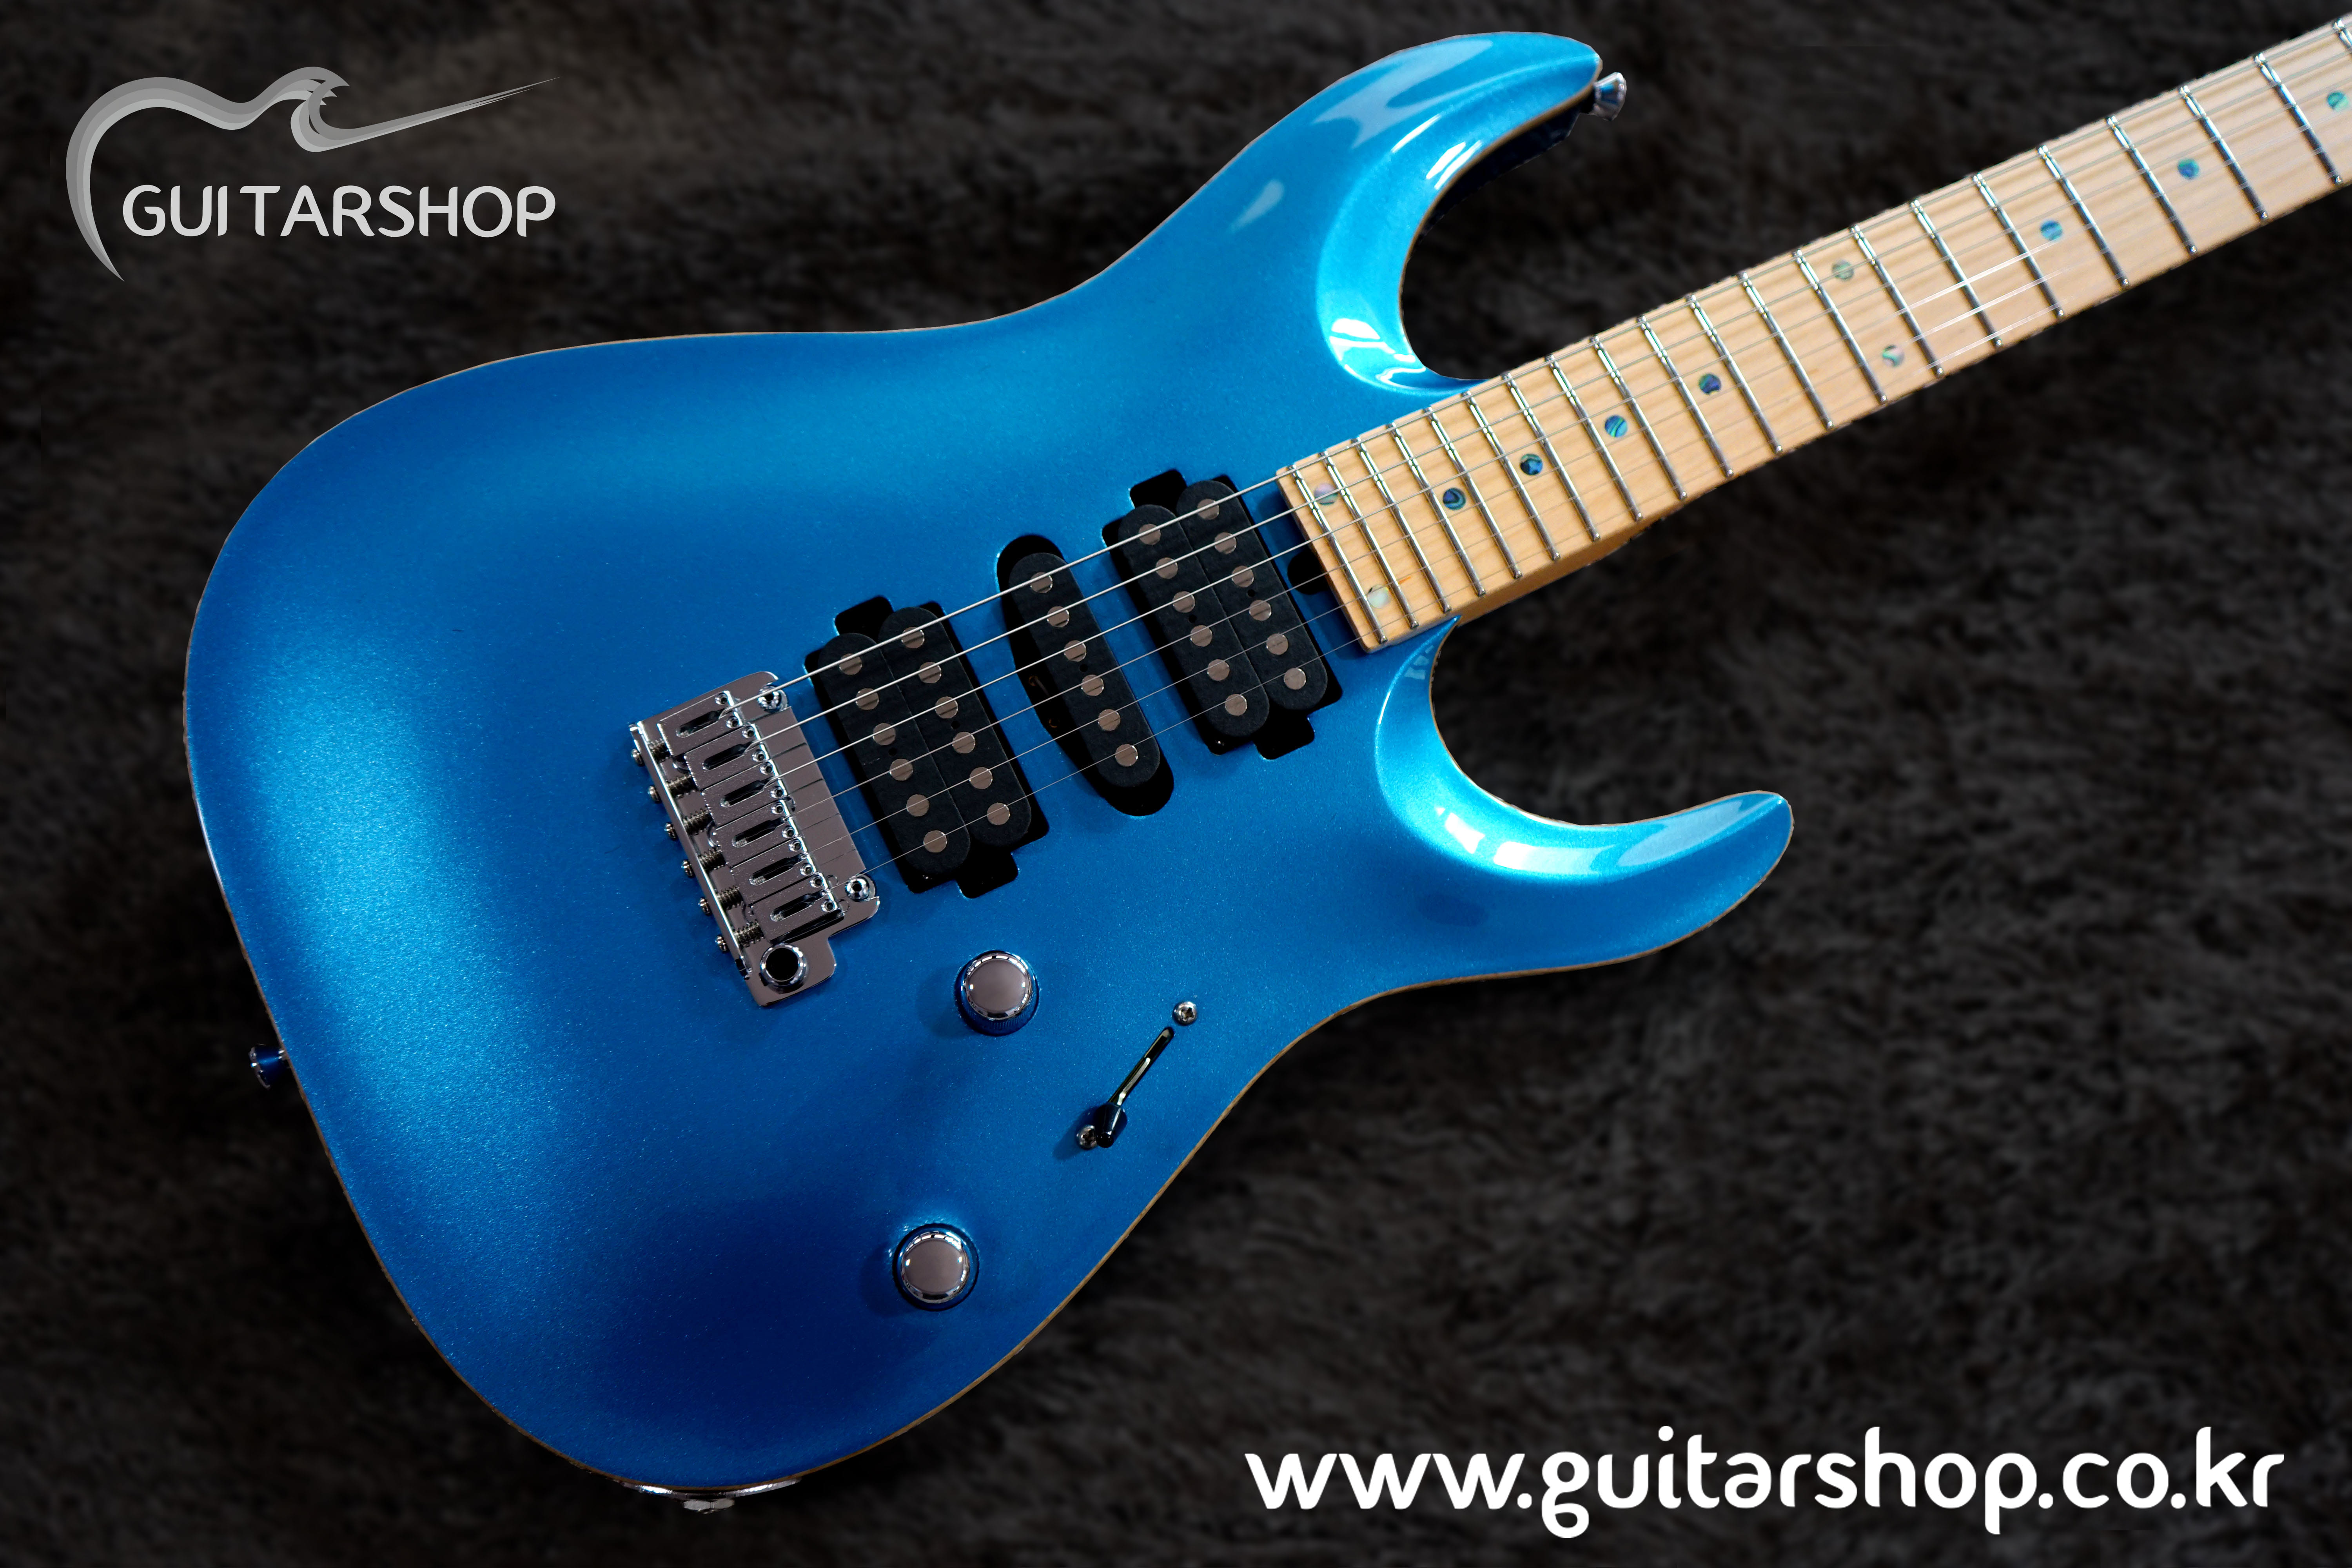 T's GUITAR DST-Prp24,Carved,Ash Model (Lake Placid Blue)